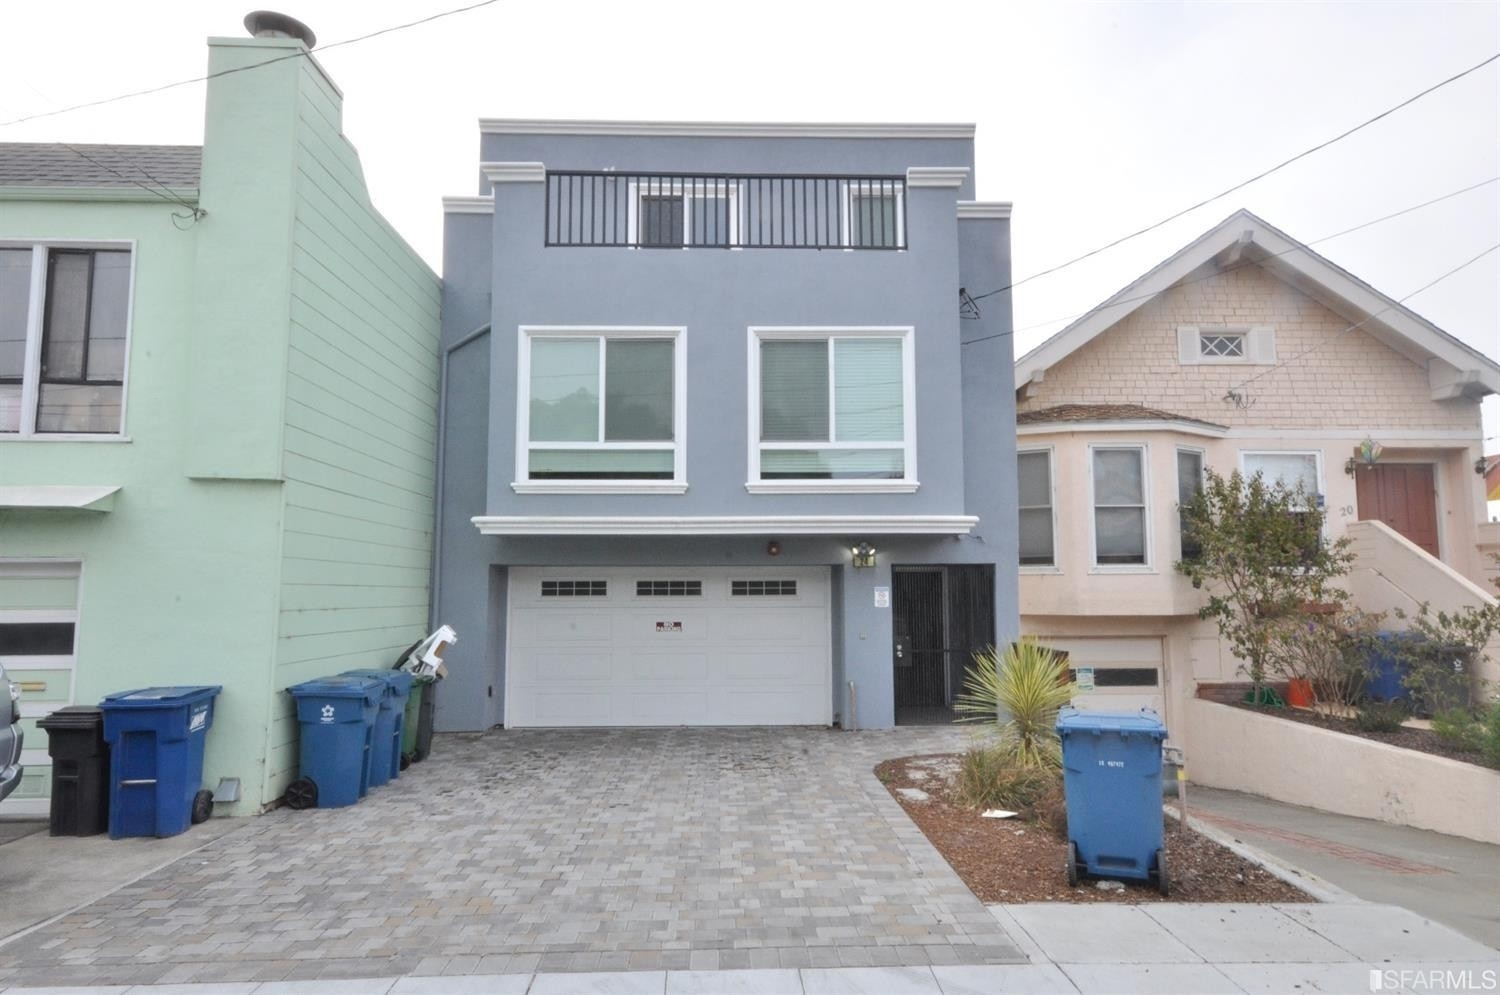 Rentals at Vista Grande, Daly City, CA 94014